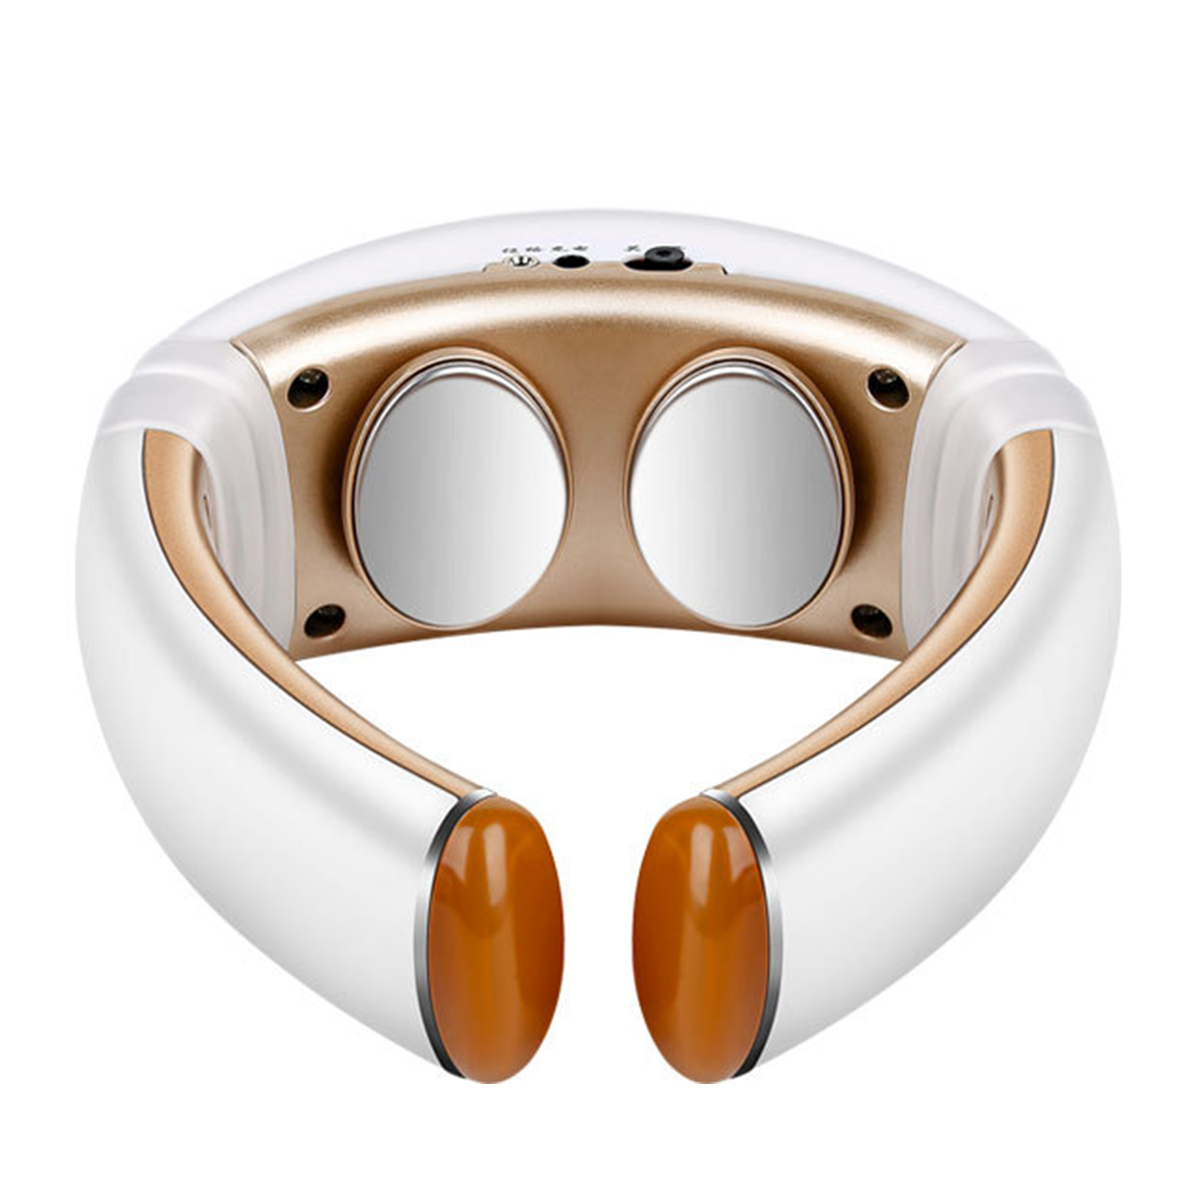 3D Smart Neck Massager Heating Acupuncture Electric Pulse Pain Relief Treatment Therapy Device